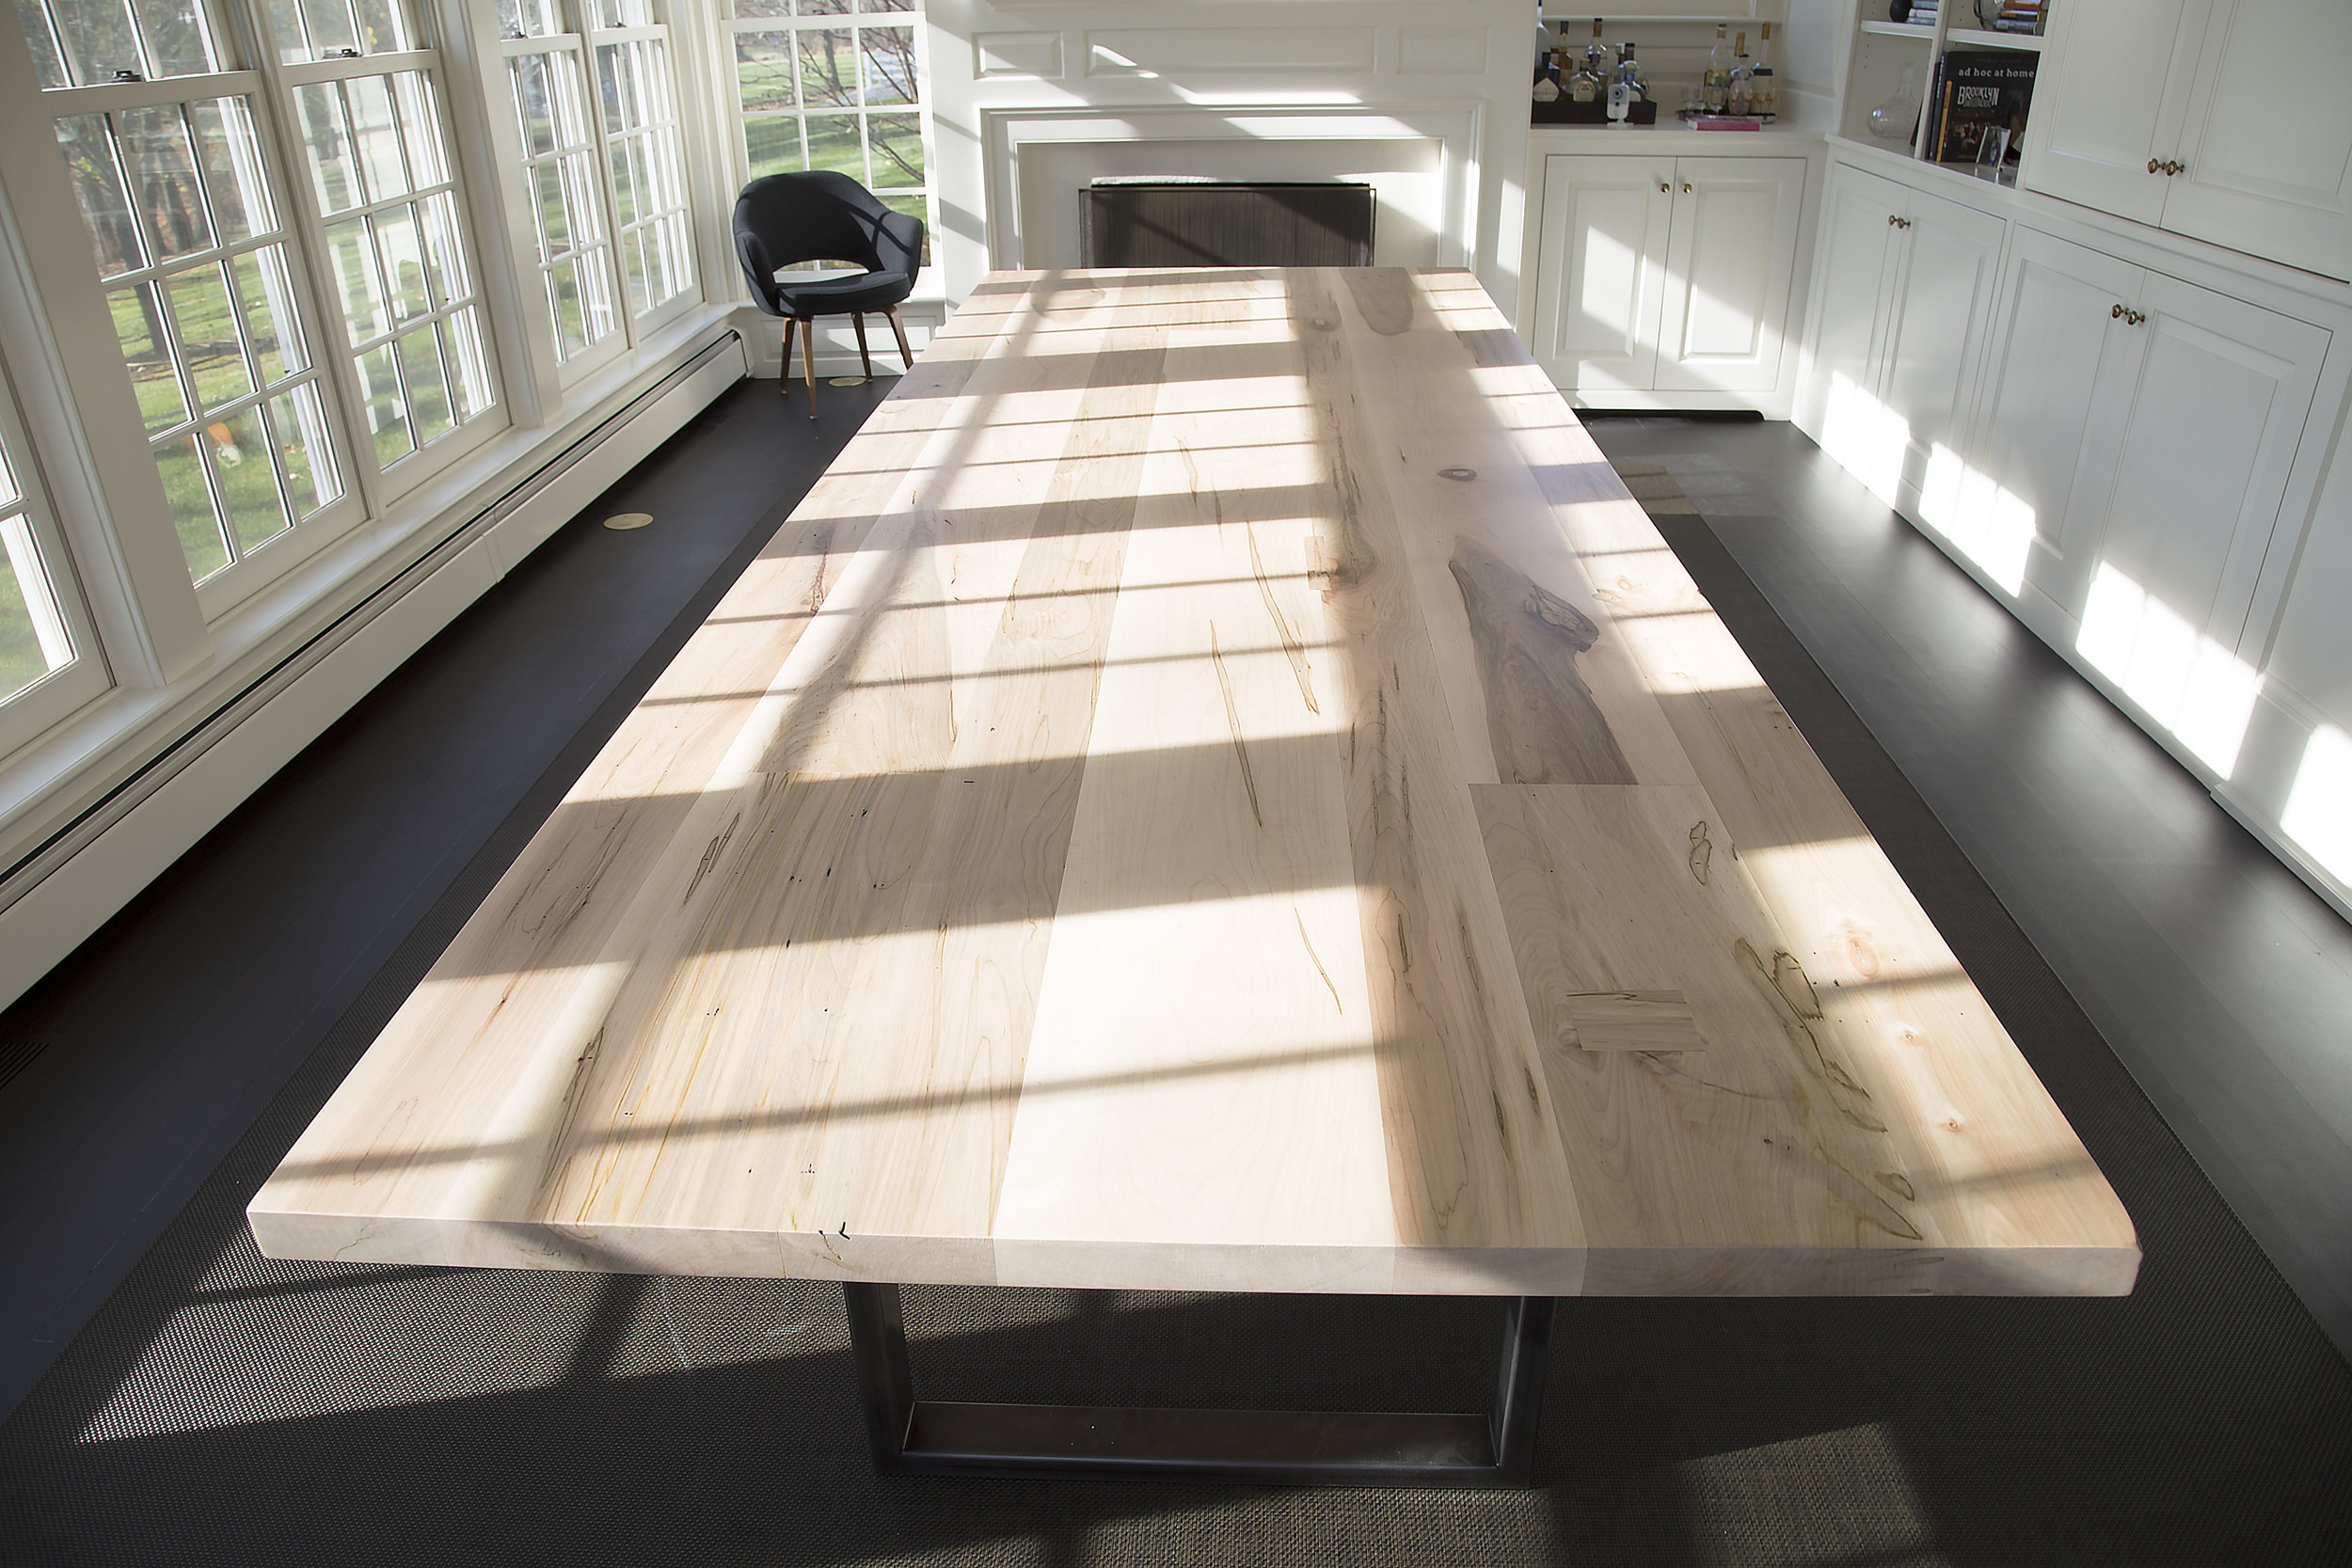 Ambrosia_maple_Dining_table_fig.6.jpg